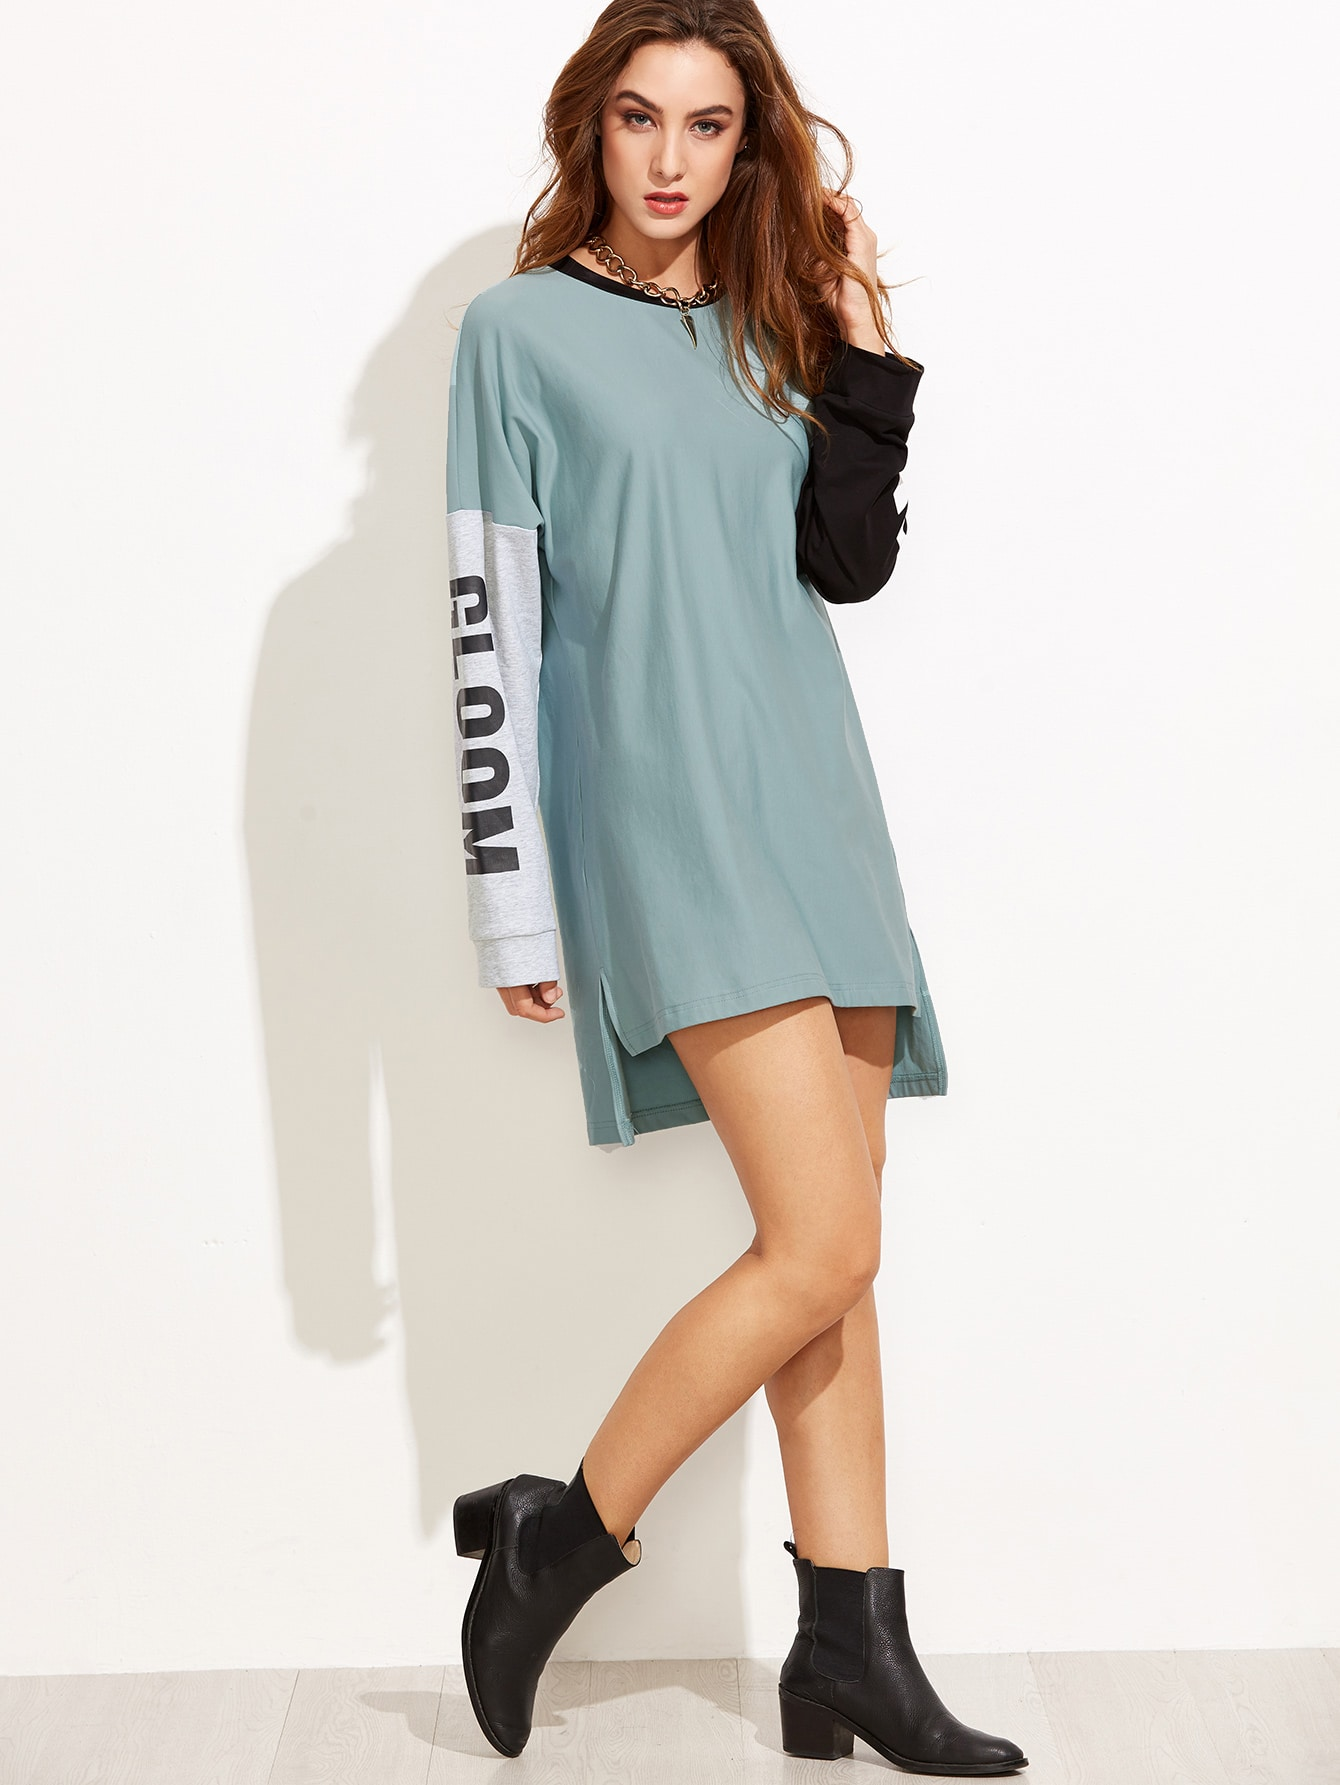 Color Block Letter Print High Low Sweatshirt DressColor Block Letter Print High Low Sweatshirt Dress<br><br>color: Green<br>size: L,M,S,XS